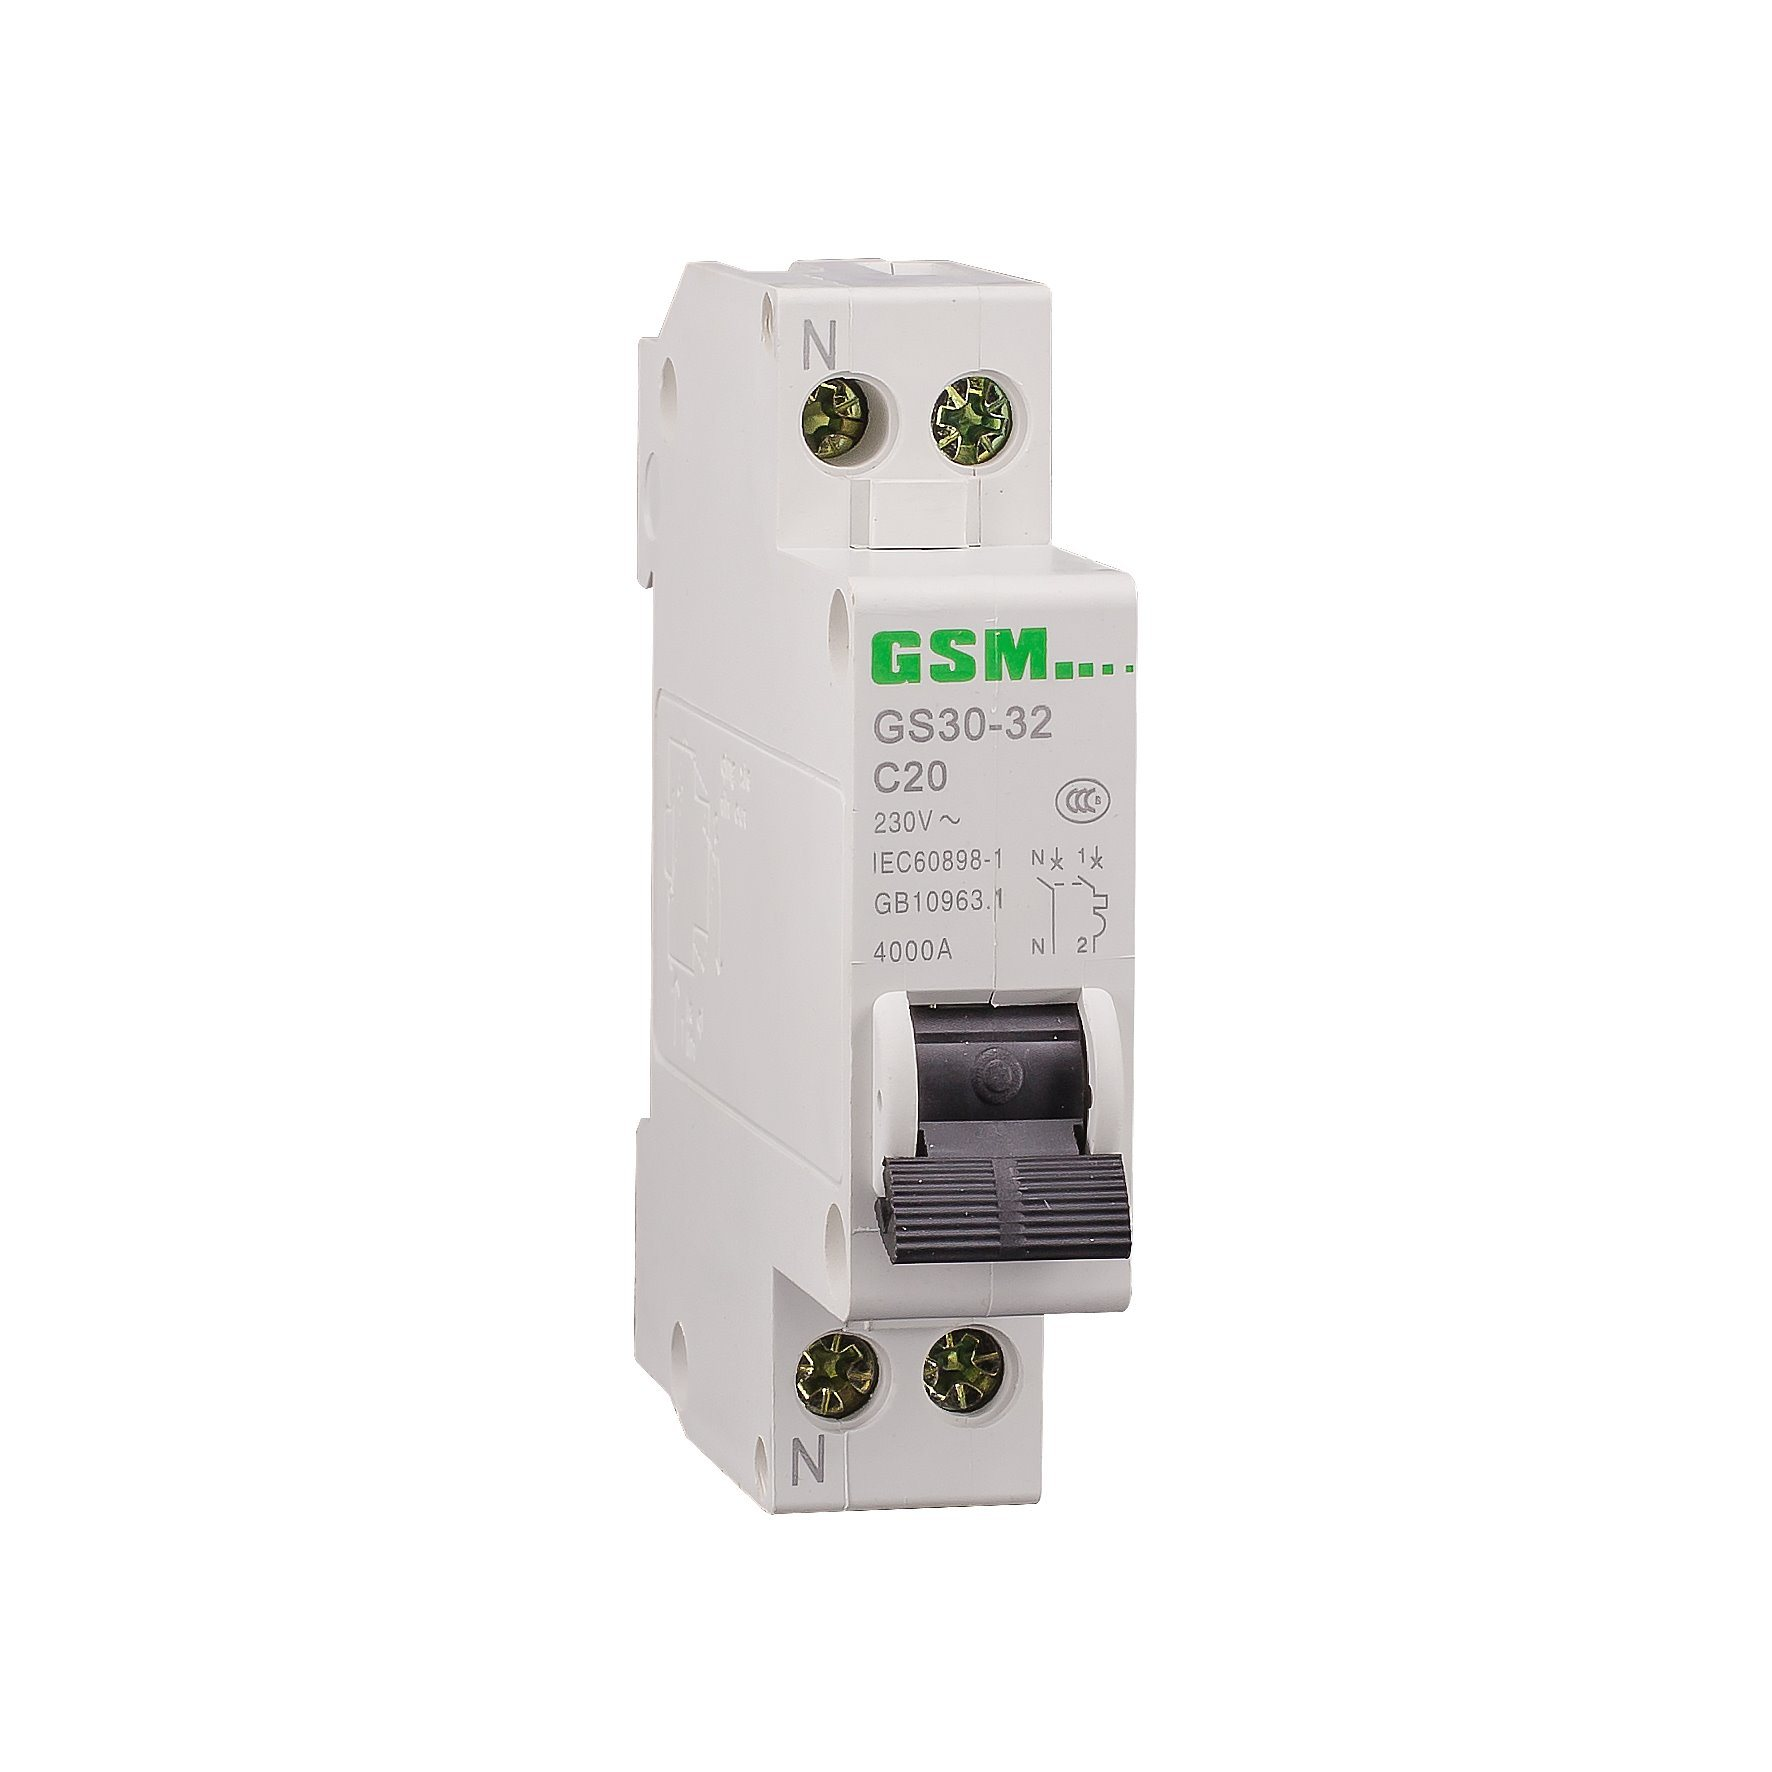 Miniature Circuit Breaker GS30-32